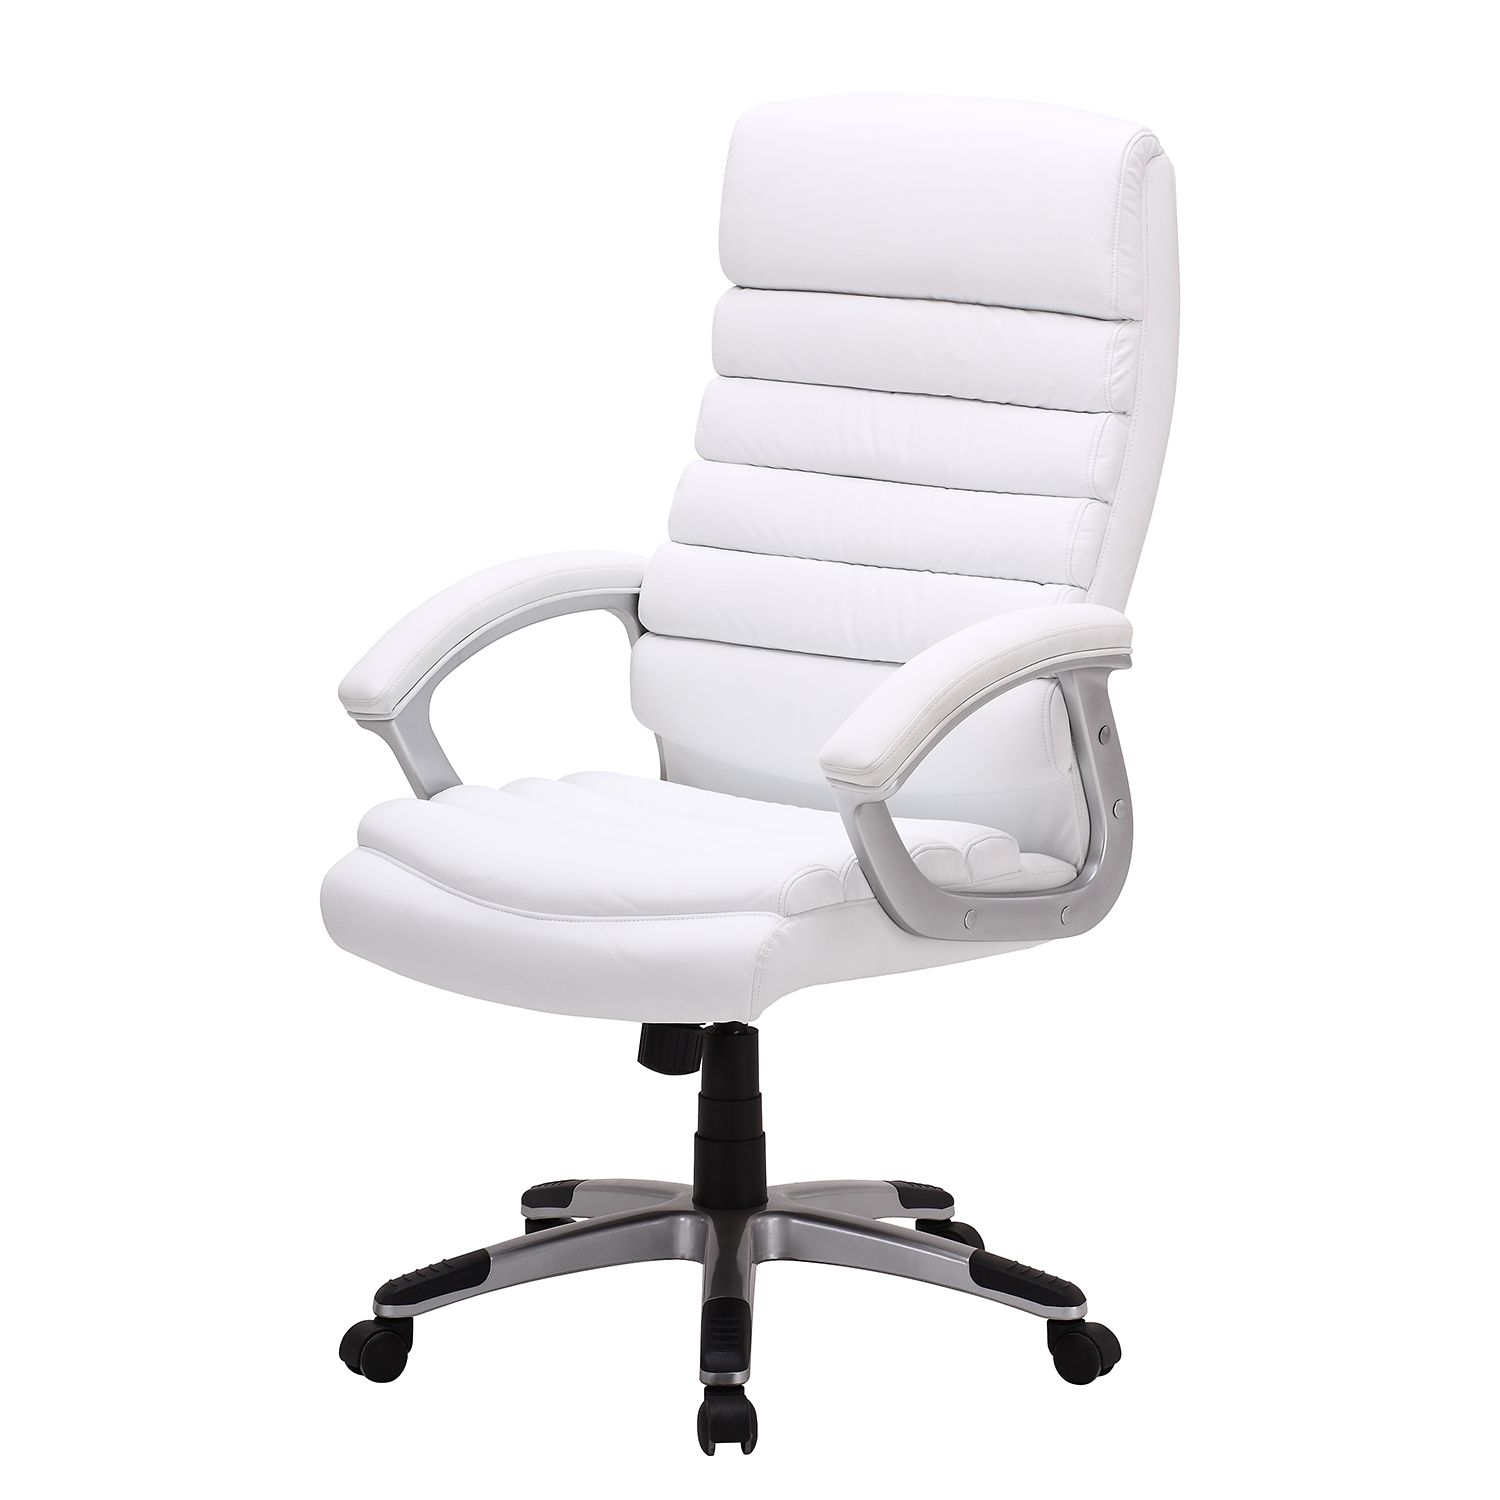 Home 24 - Fauteuil de direction hatley - imitation cuir - blanc, home24 office